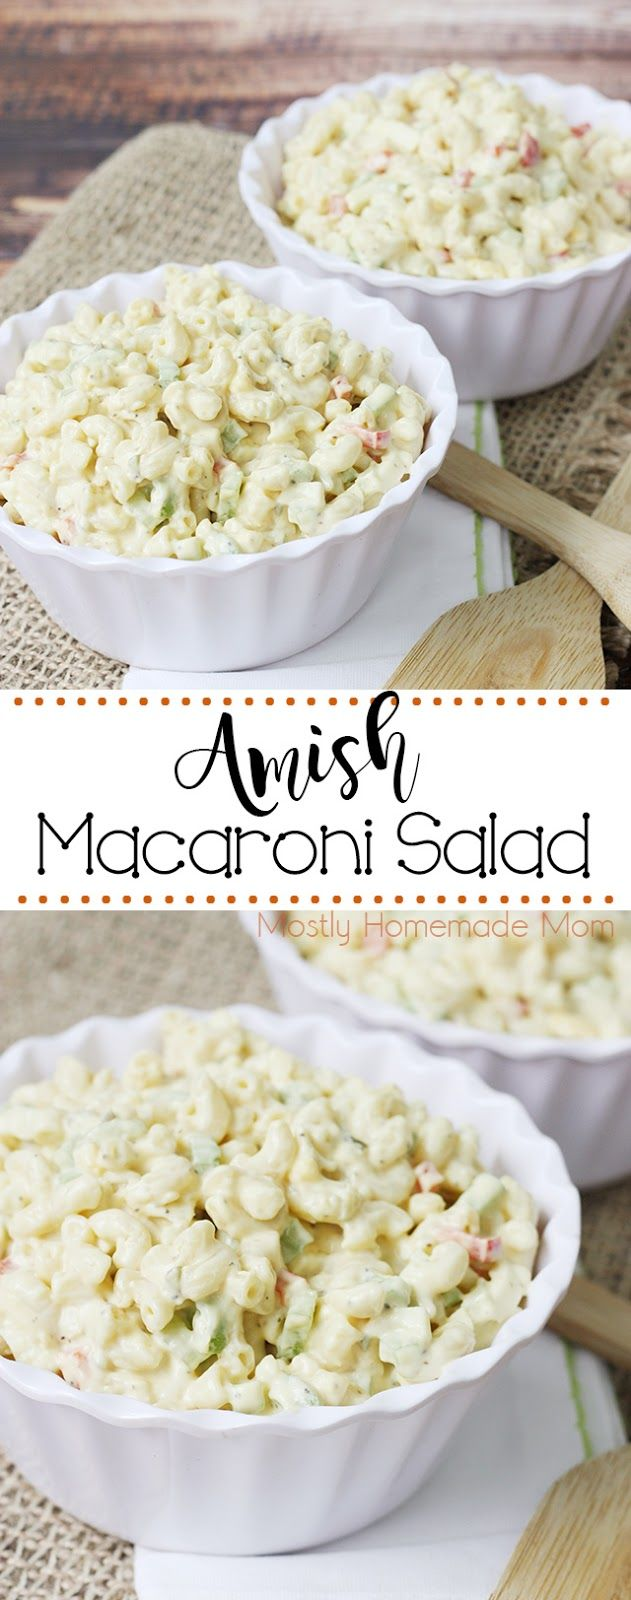 Amish Macaroni Salad -   22 macaroni salad recipes ideas